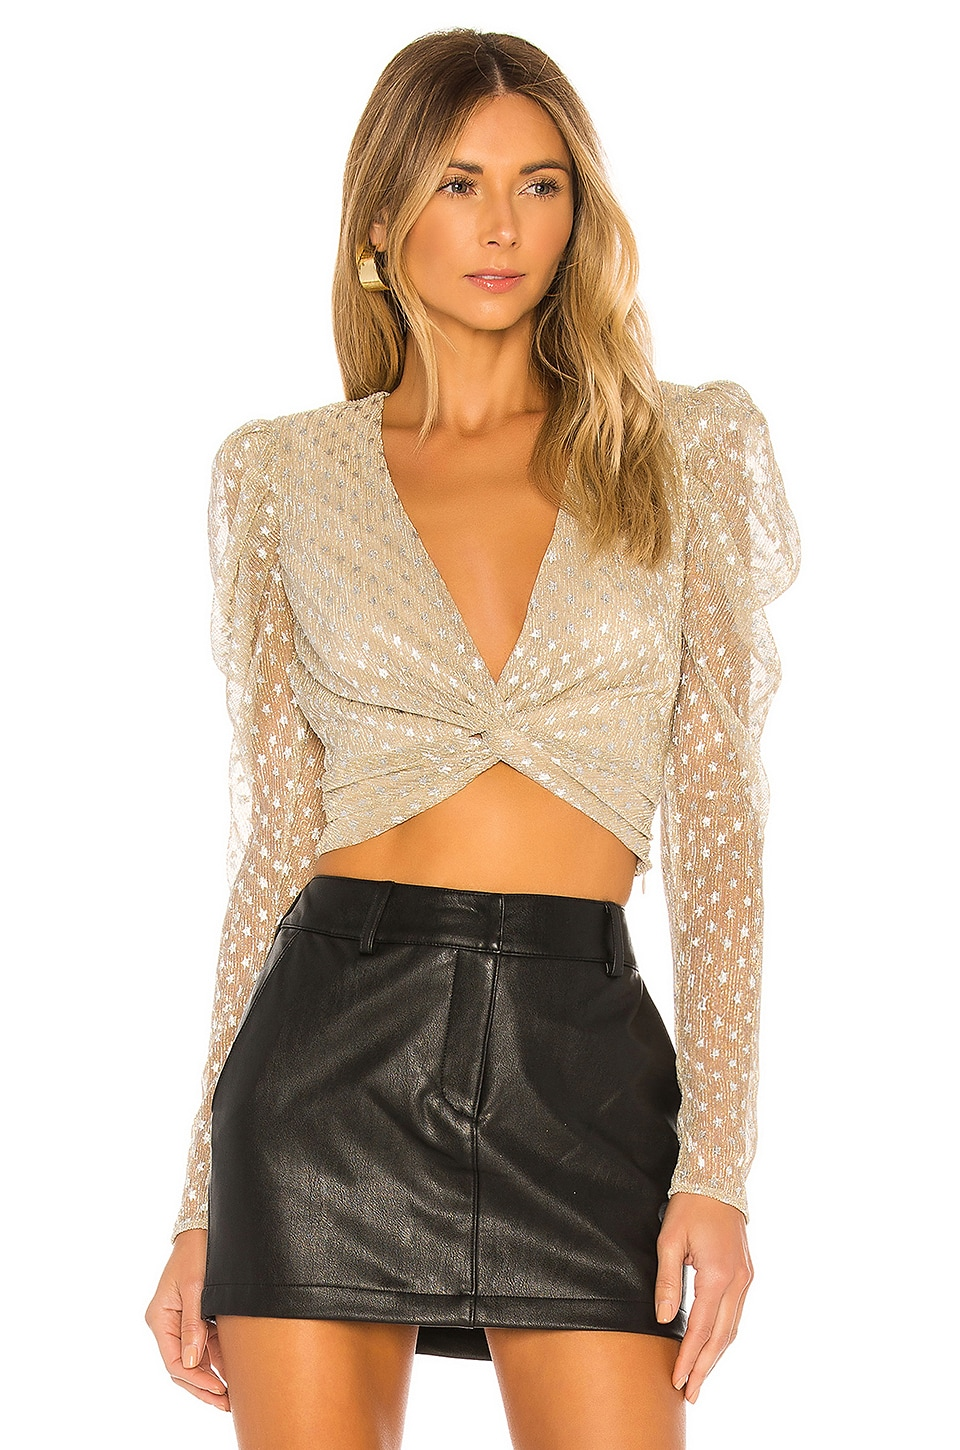 House of Harlow 1960 x REVOLVE Leela Blouse in Metallic Star